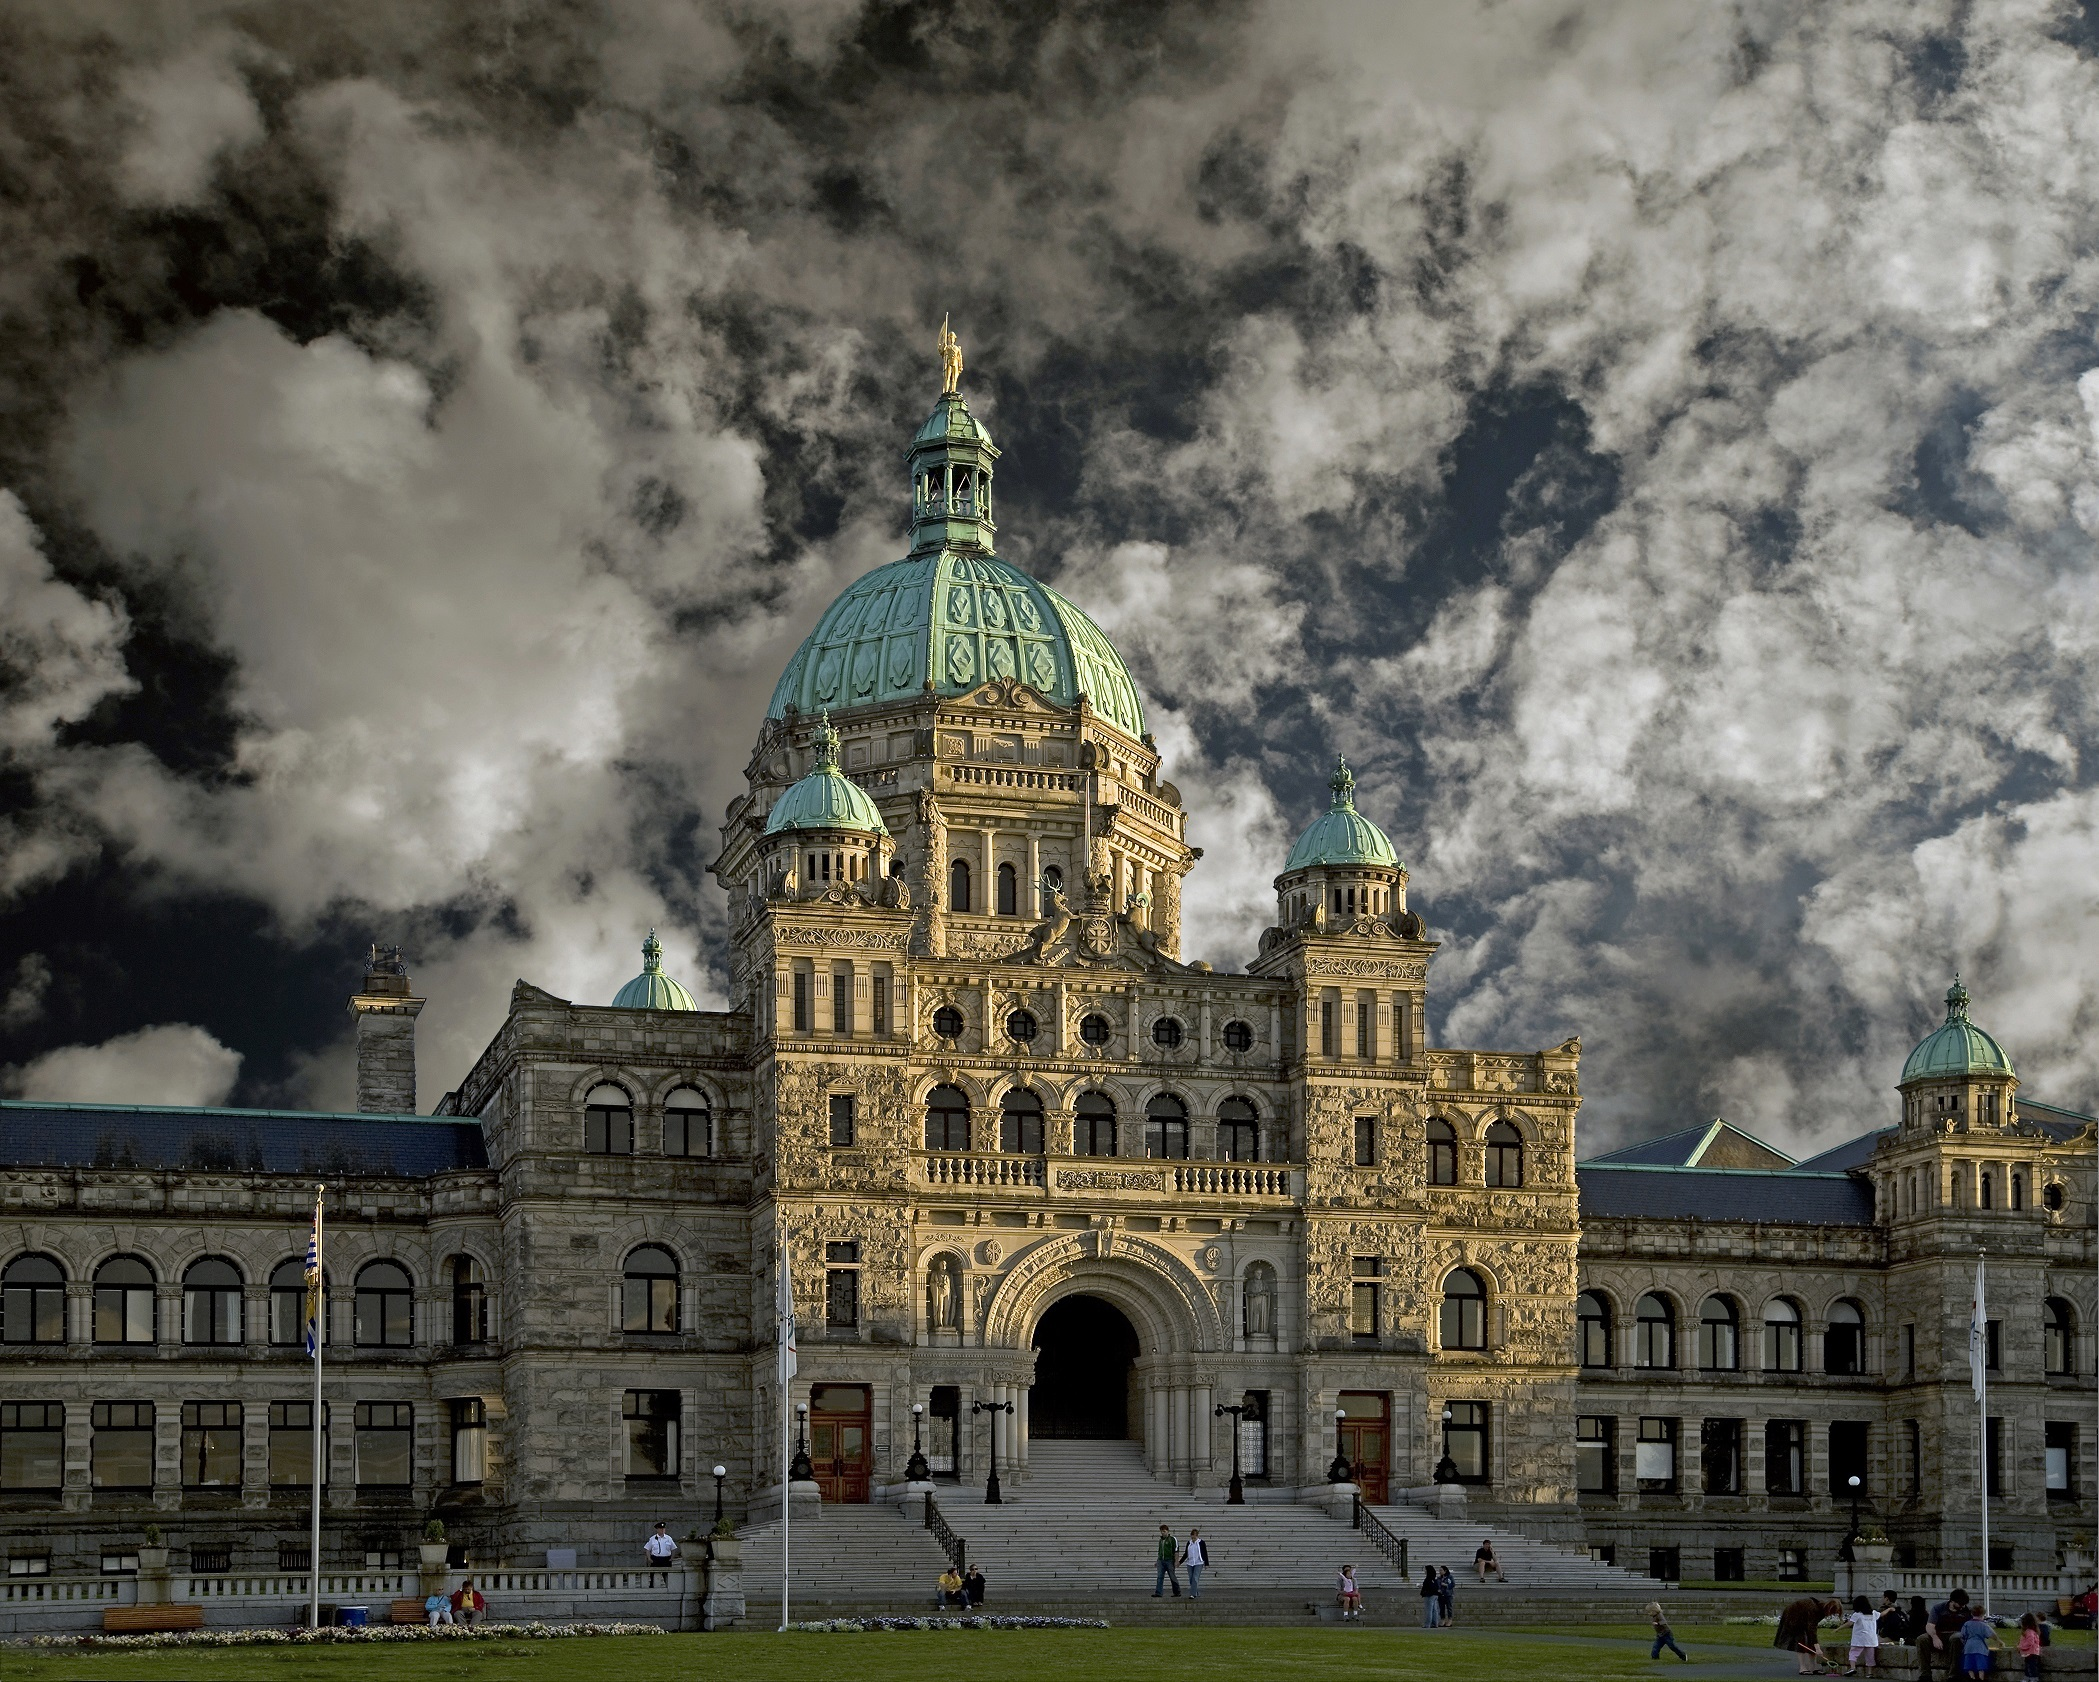 B.C. Budget 2020: Balanced...But Little to Improve B.C.'s Competitive Position